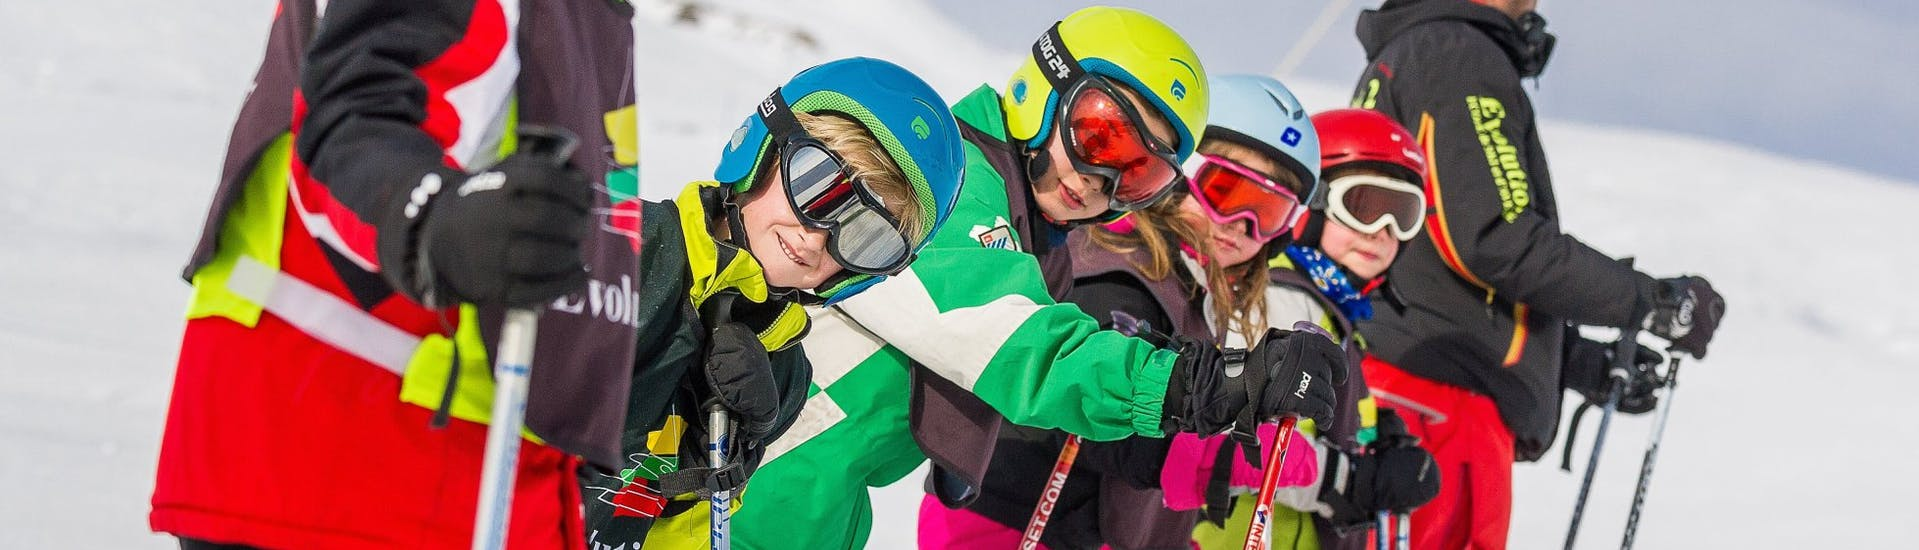 """[Bkp] Ski Lessons """"Morning"""" for Kids (6-18 years) - All Leve with Evolution 2 Tignes - Hero image"""